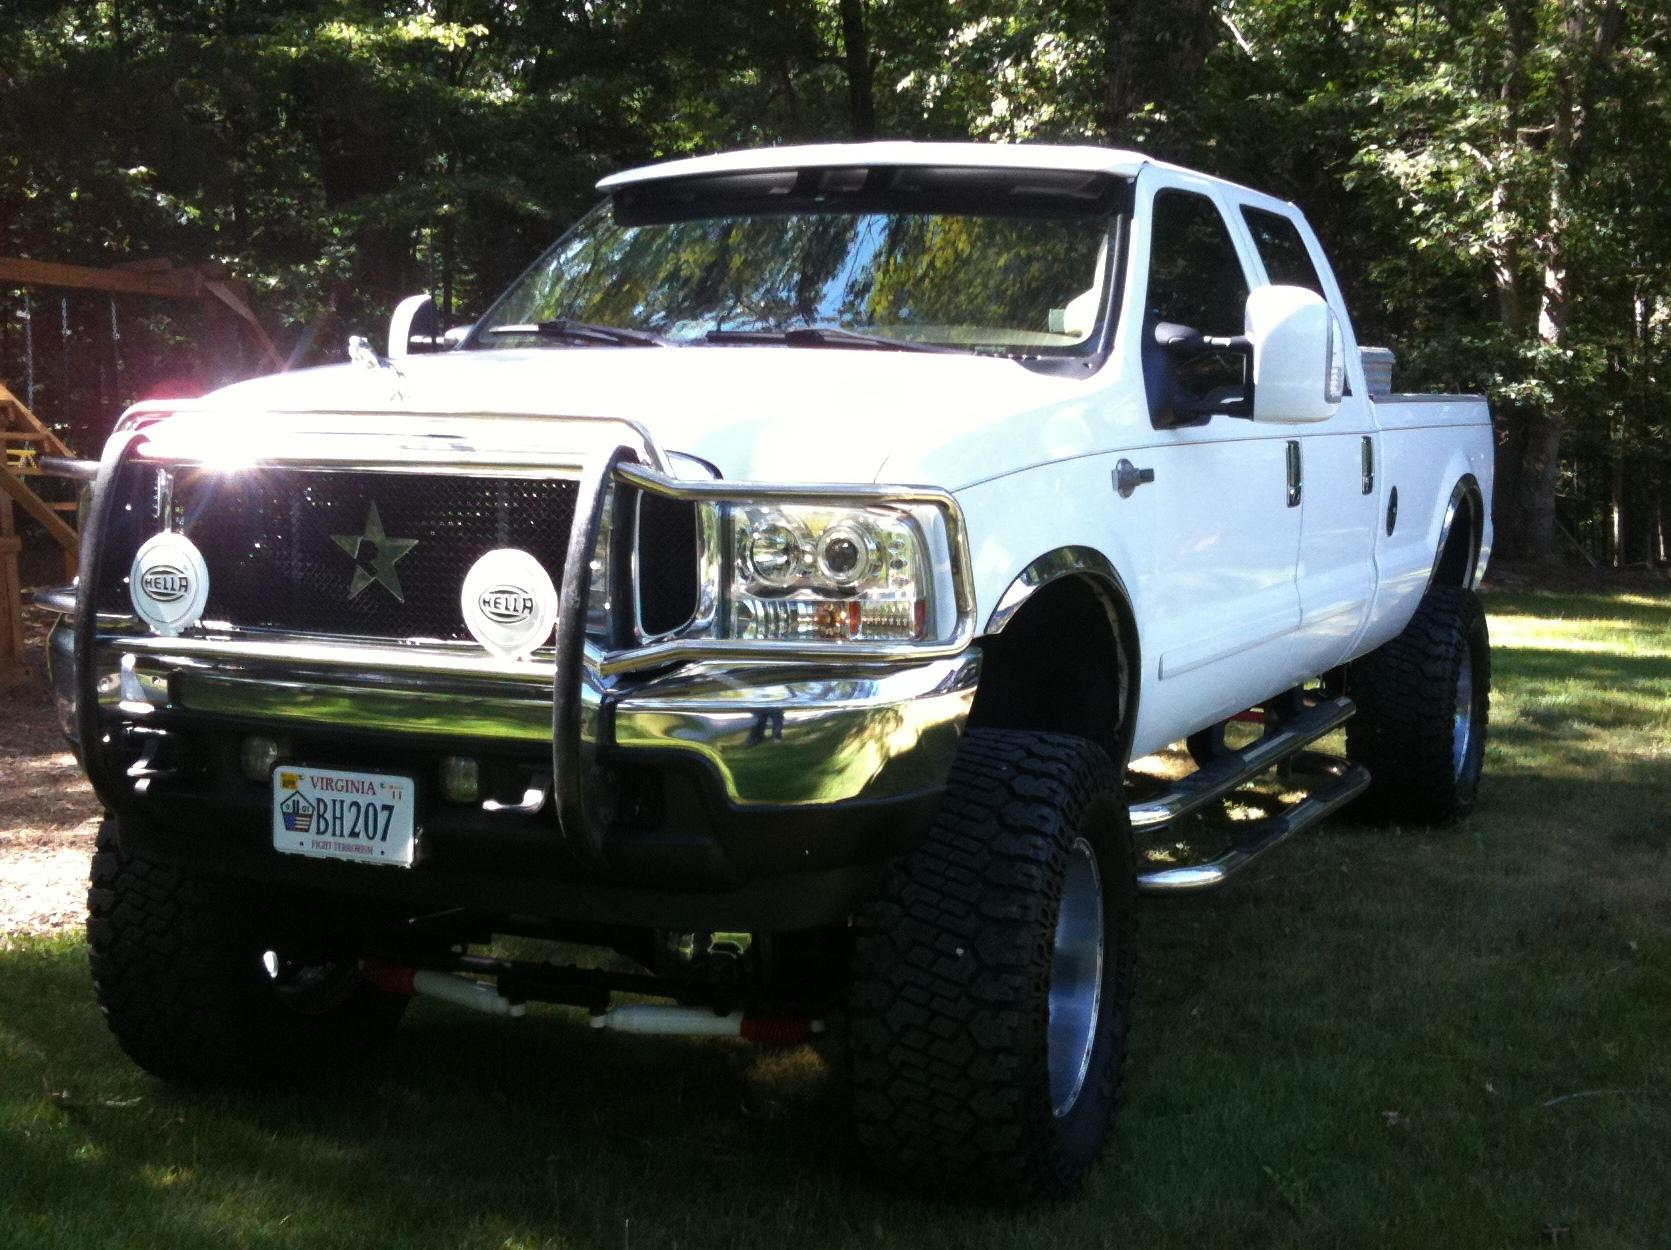 bountyhunterpro's 2002 Ford F350 Super Duty Crew Cab